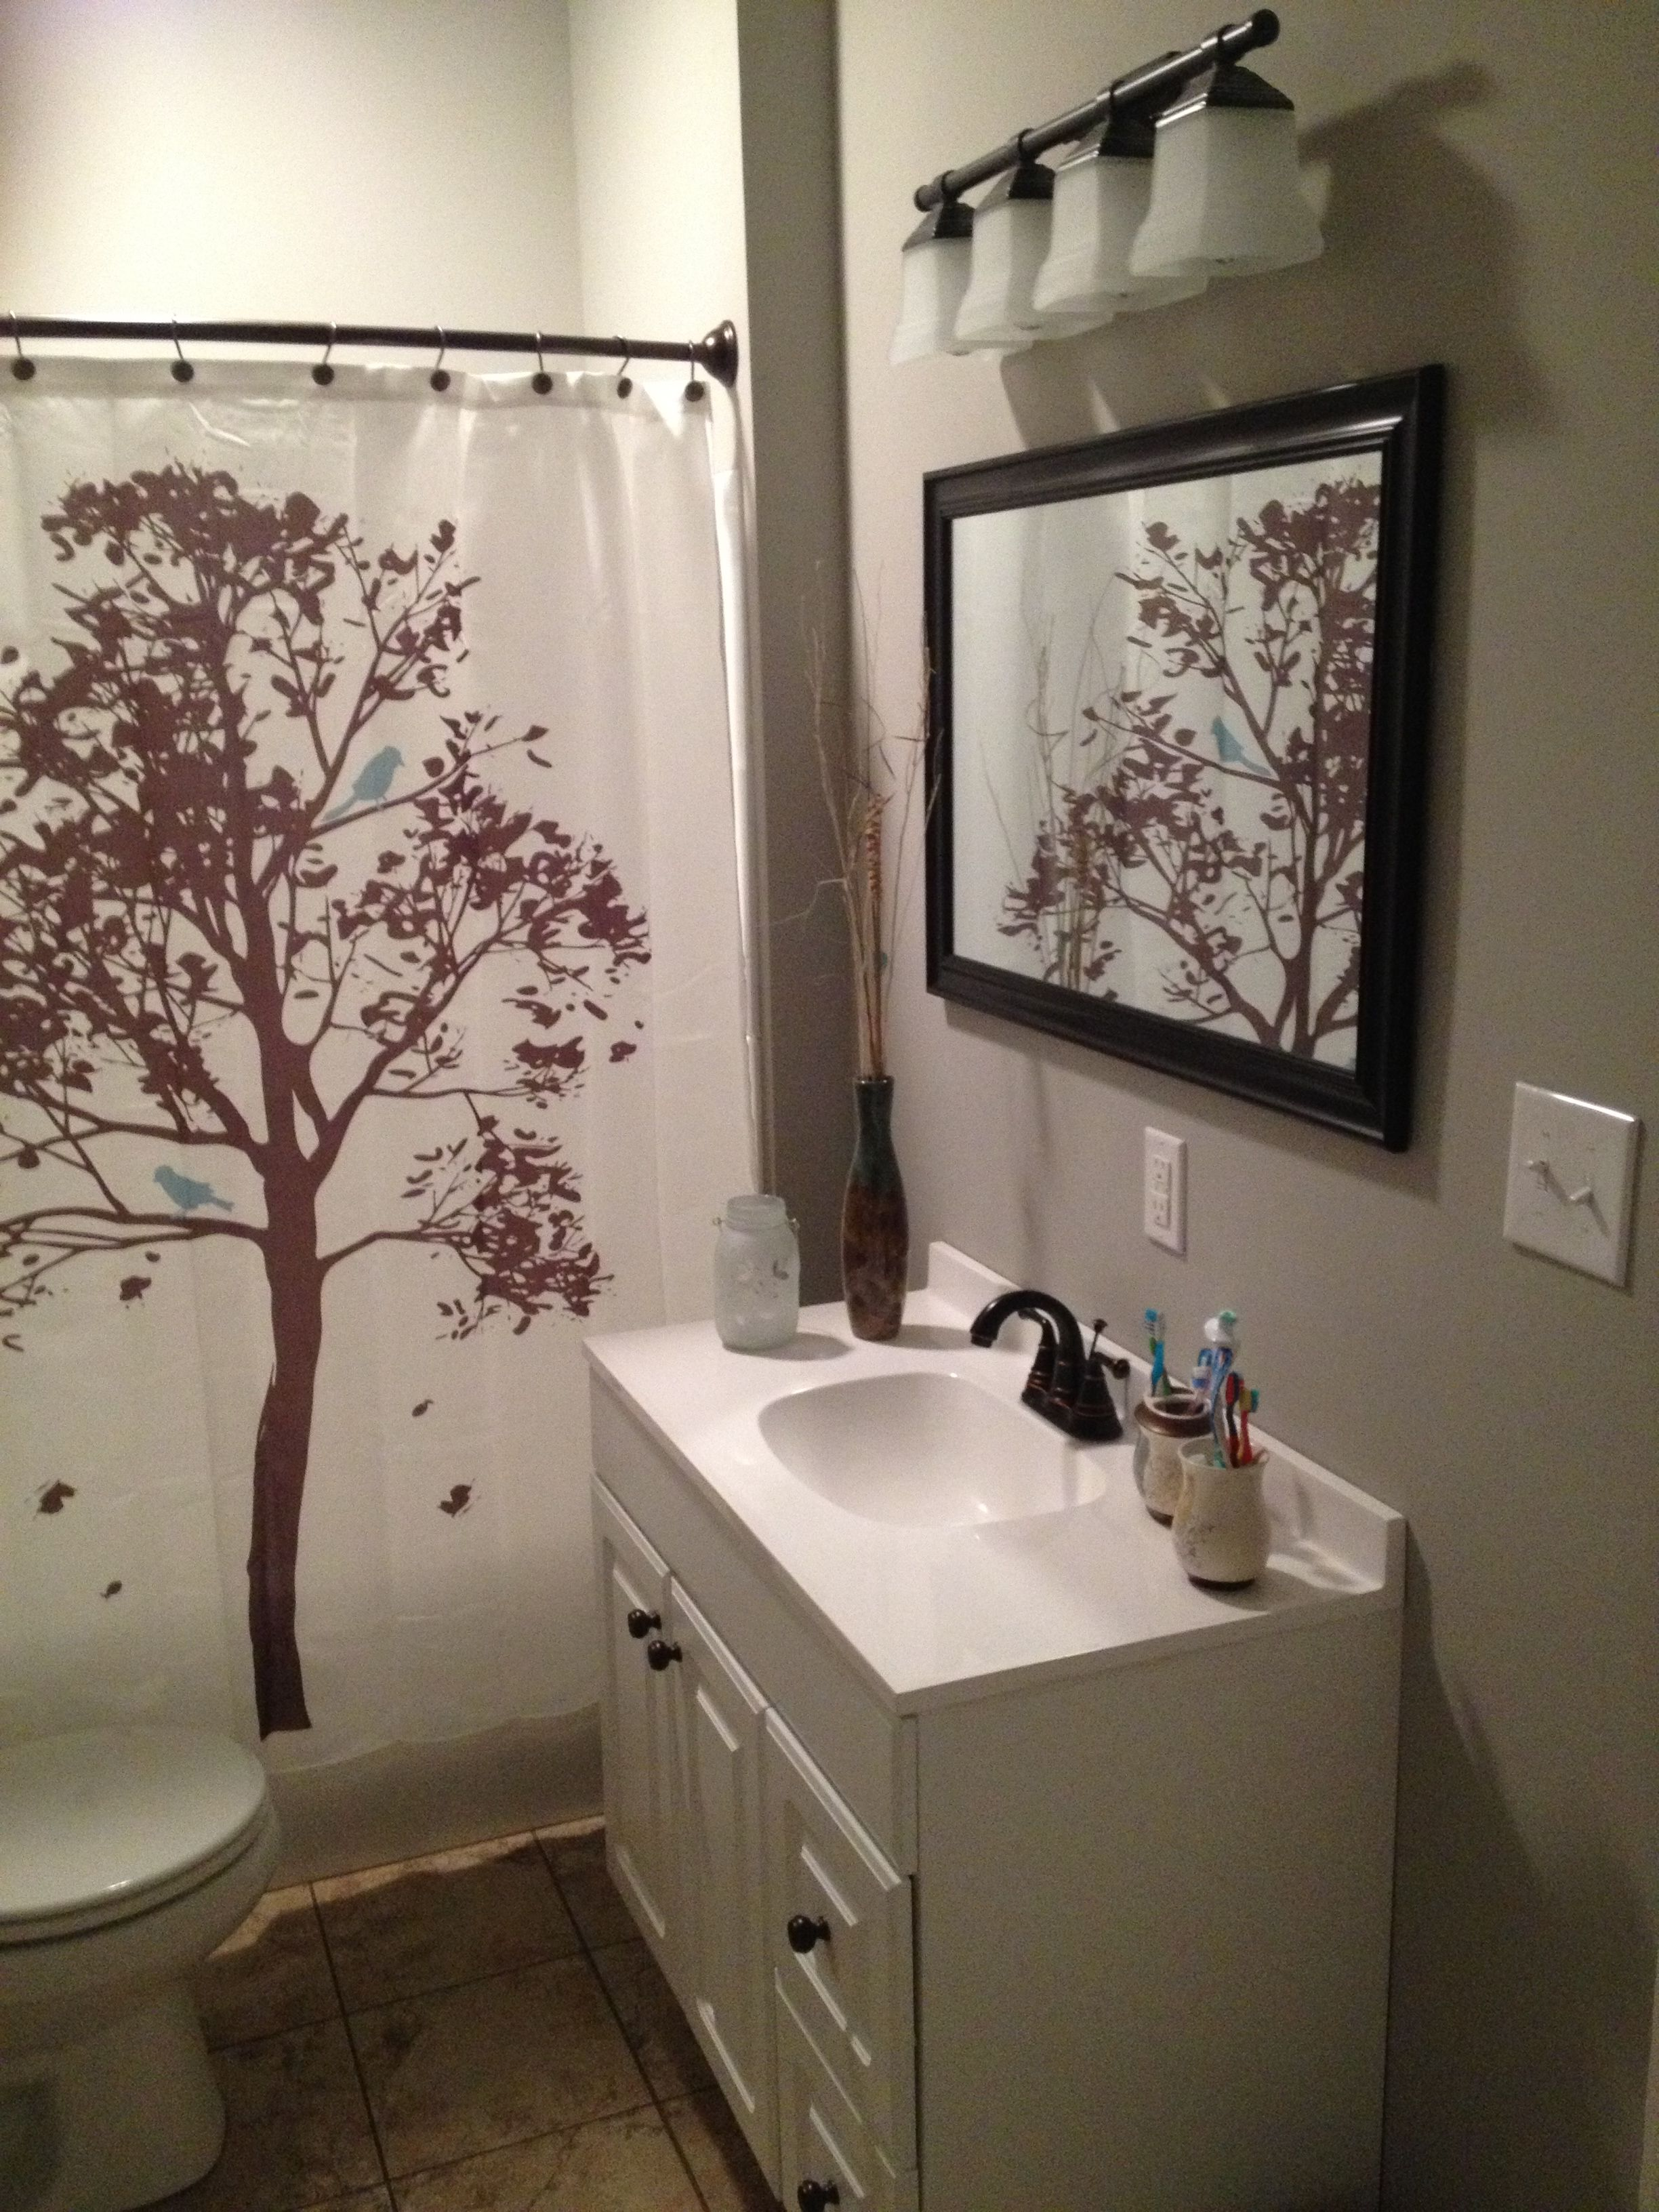 Walmart Bathroom Shower Curtains: Love The Tree Shower Curtain From Walmart